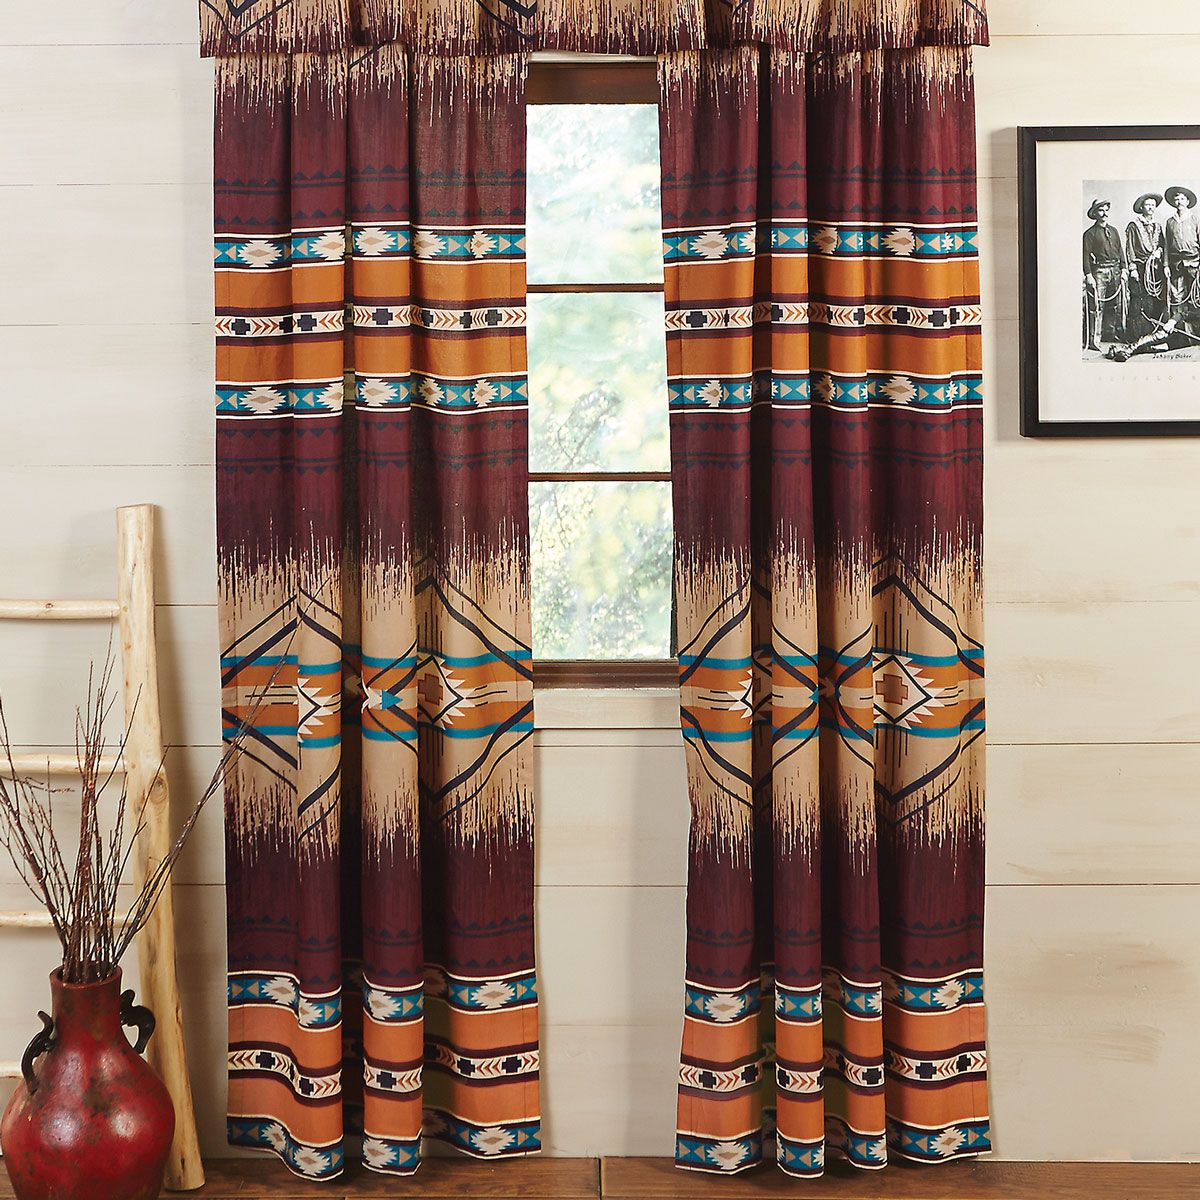 Adobe Cross Drapes